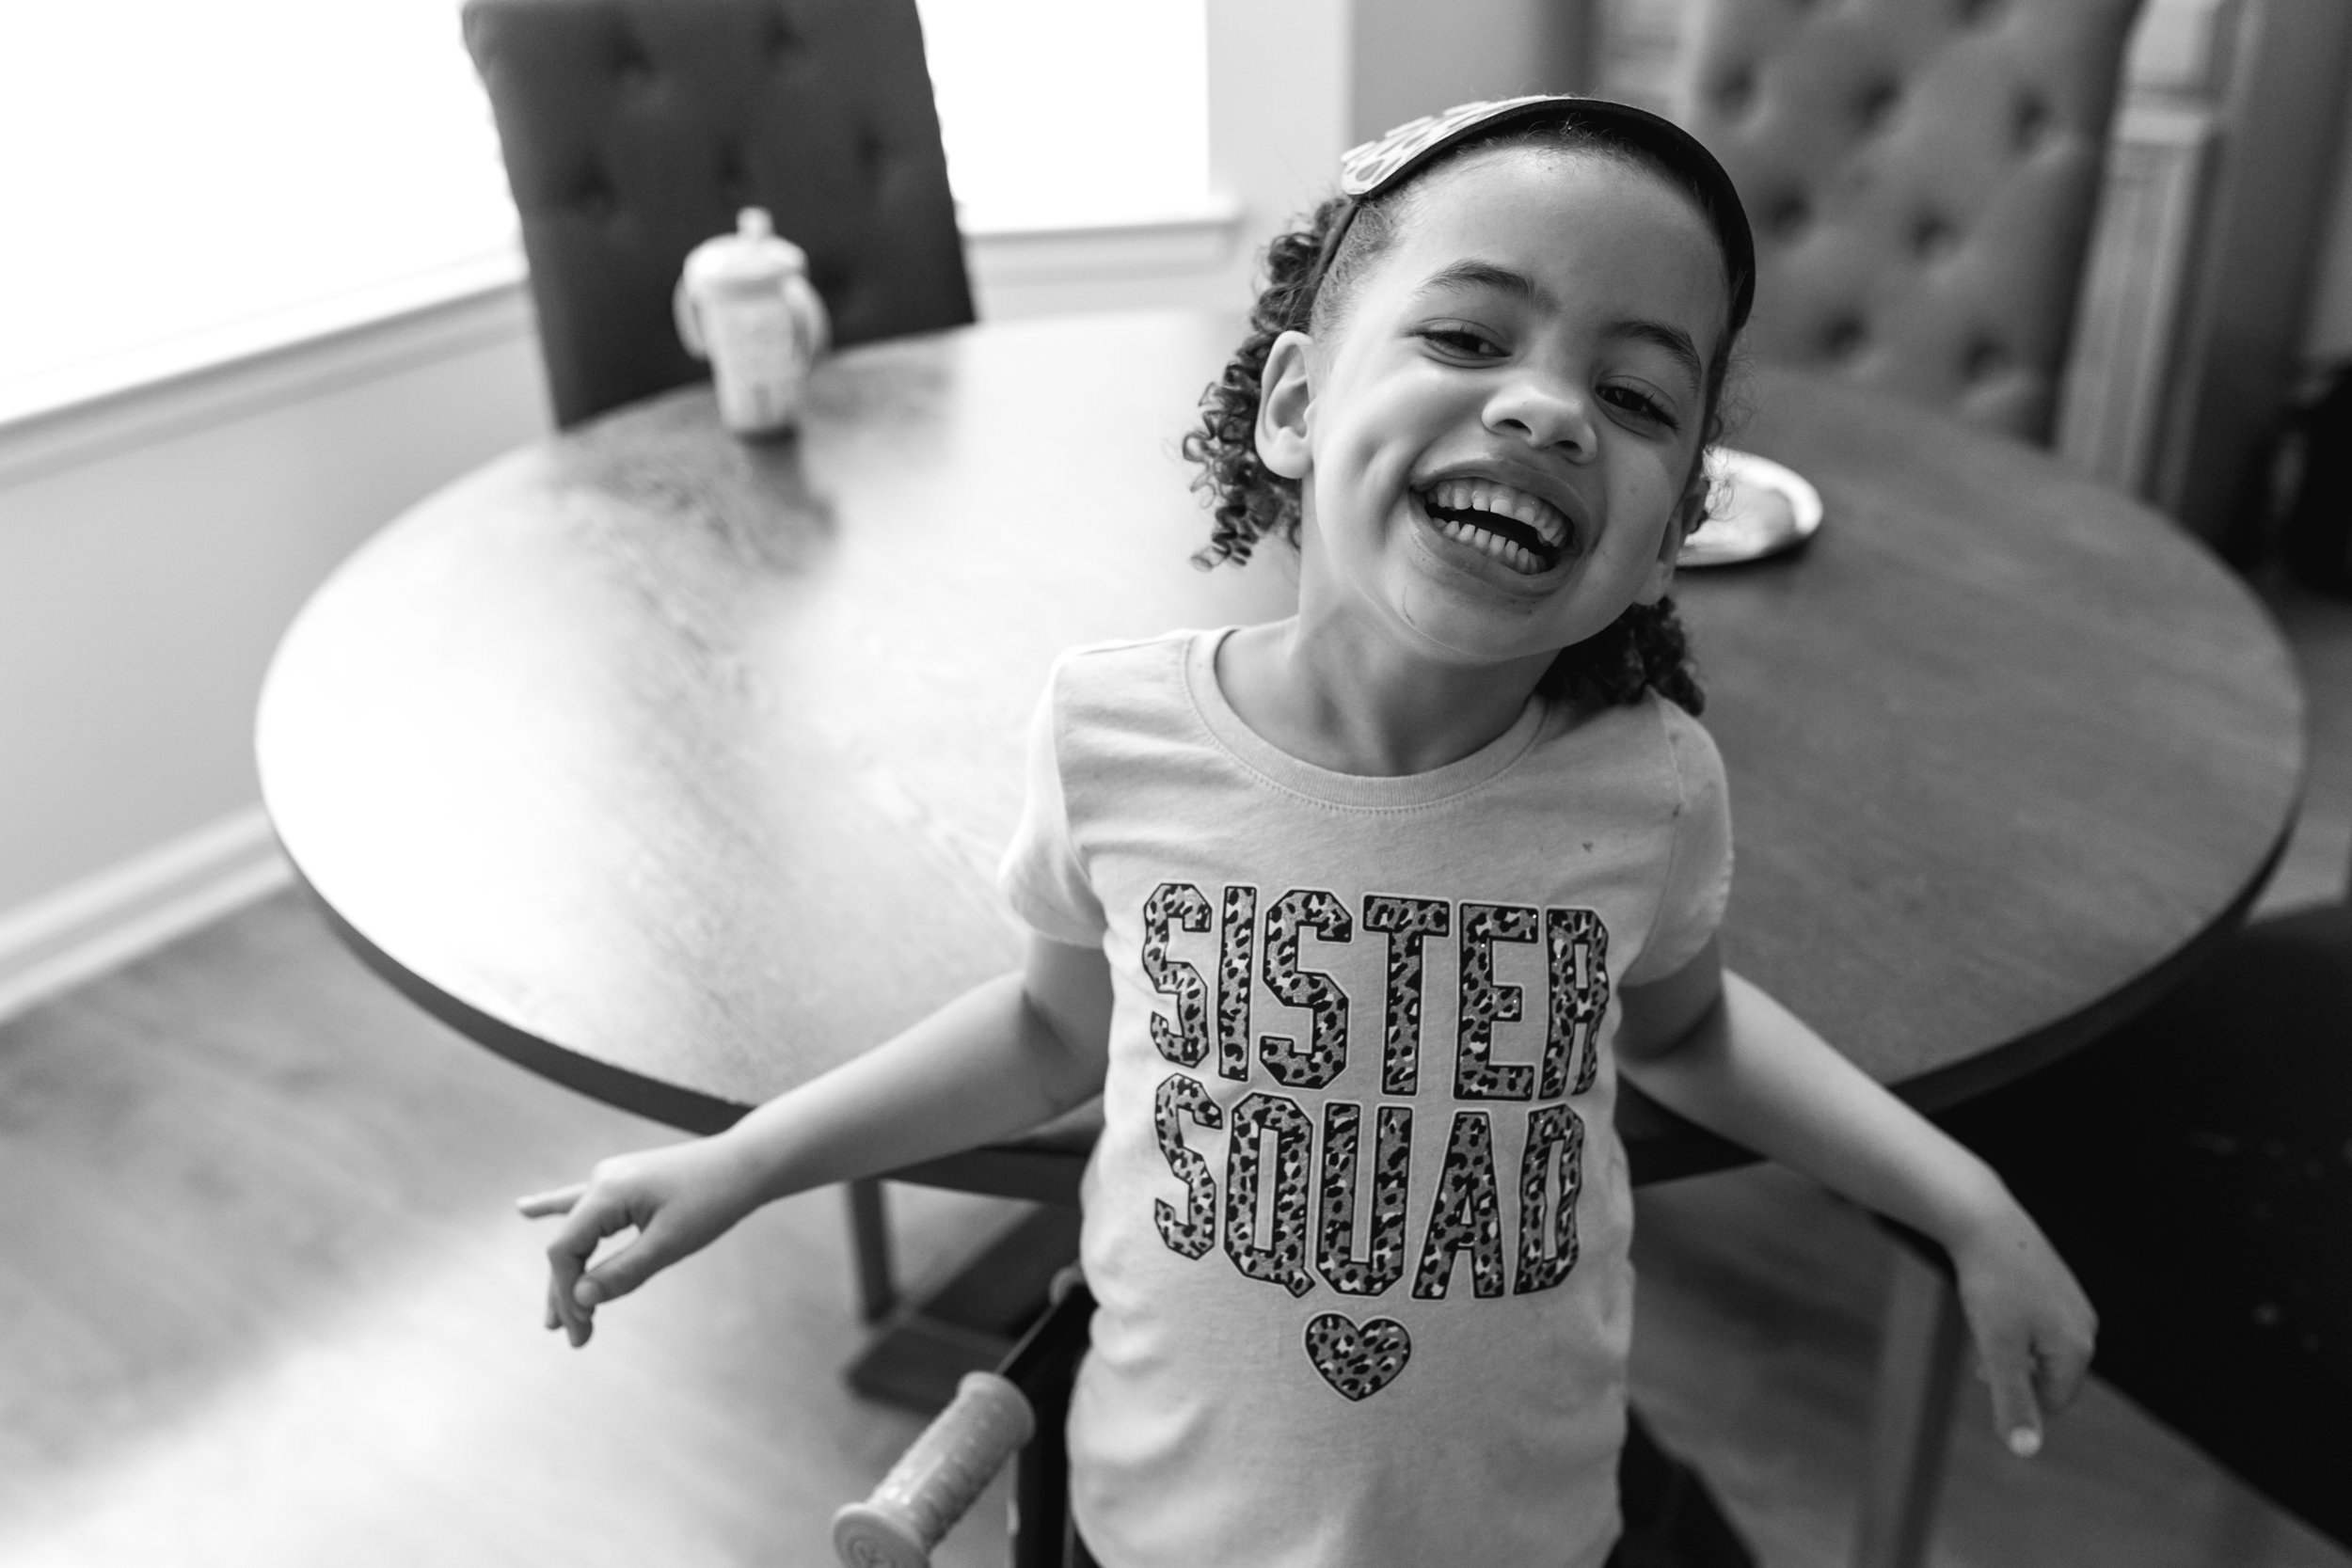 a girl wearing a shirt that says sister squad leans back against a table and smiles